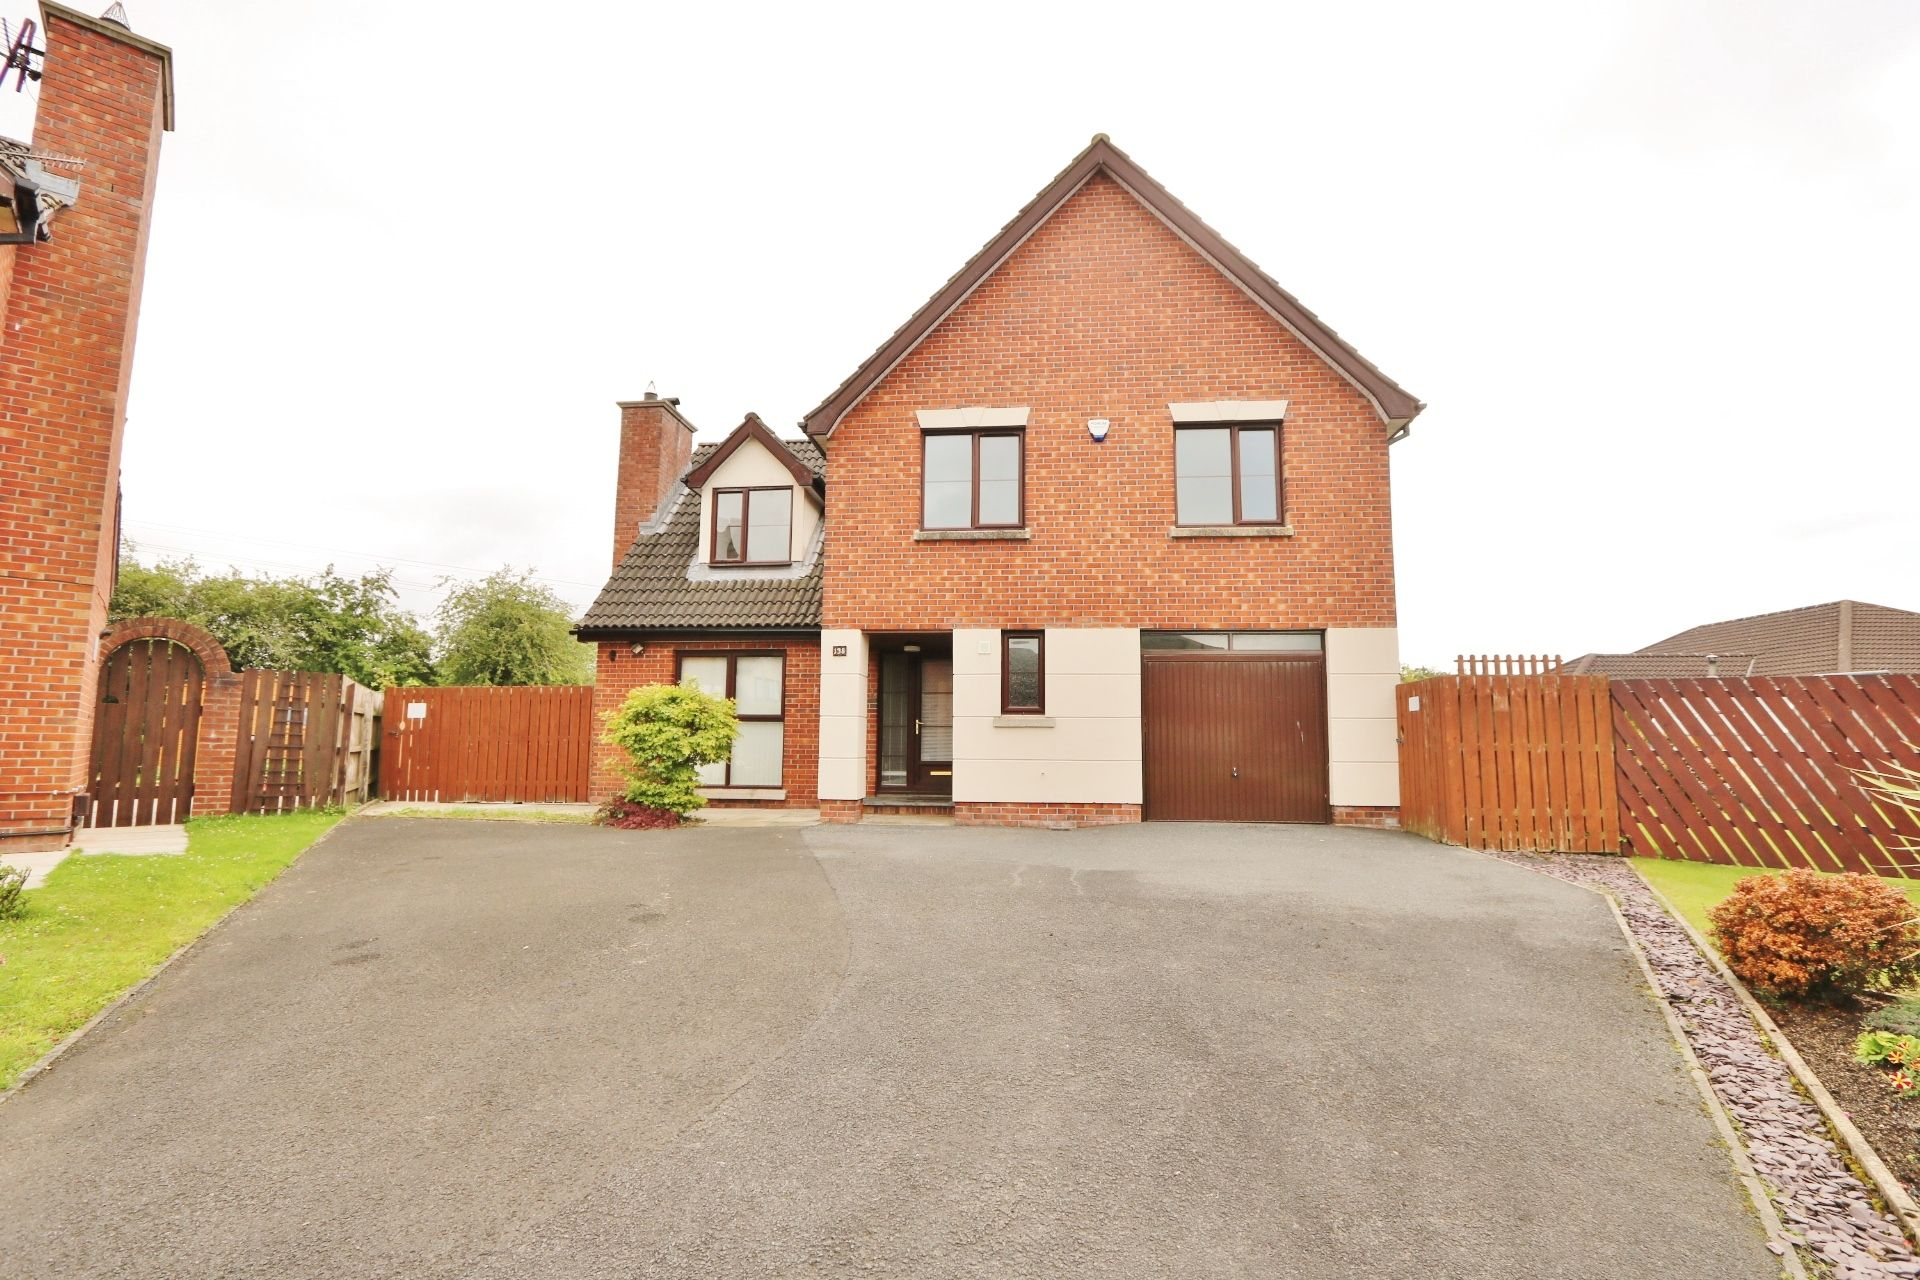 4 bedroom detached house Under Offer in Antrim - Photograph 1